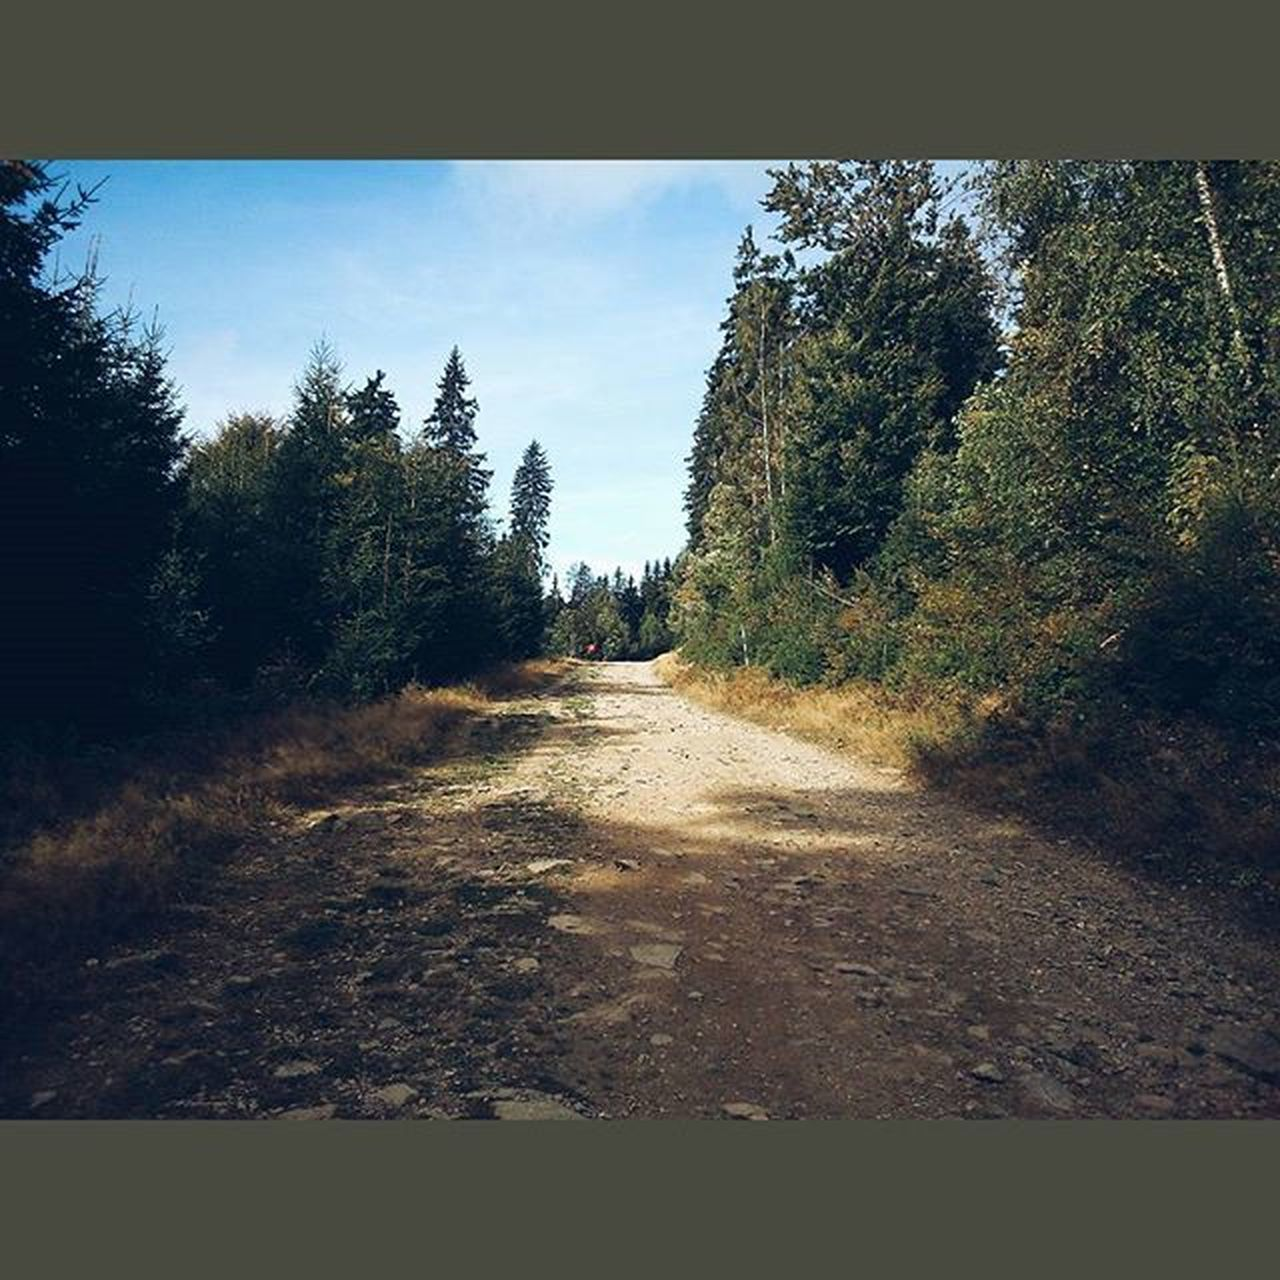 Tohle mi tech 12 let chybelo 😊🌲🚶Krkonose Medvedin Mountains Nature outdoor hike hitchhiking outdoors relax czech czechrepublic vscocze vsco vscocam